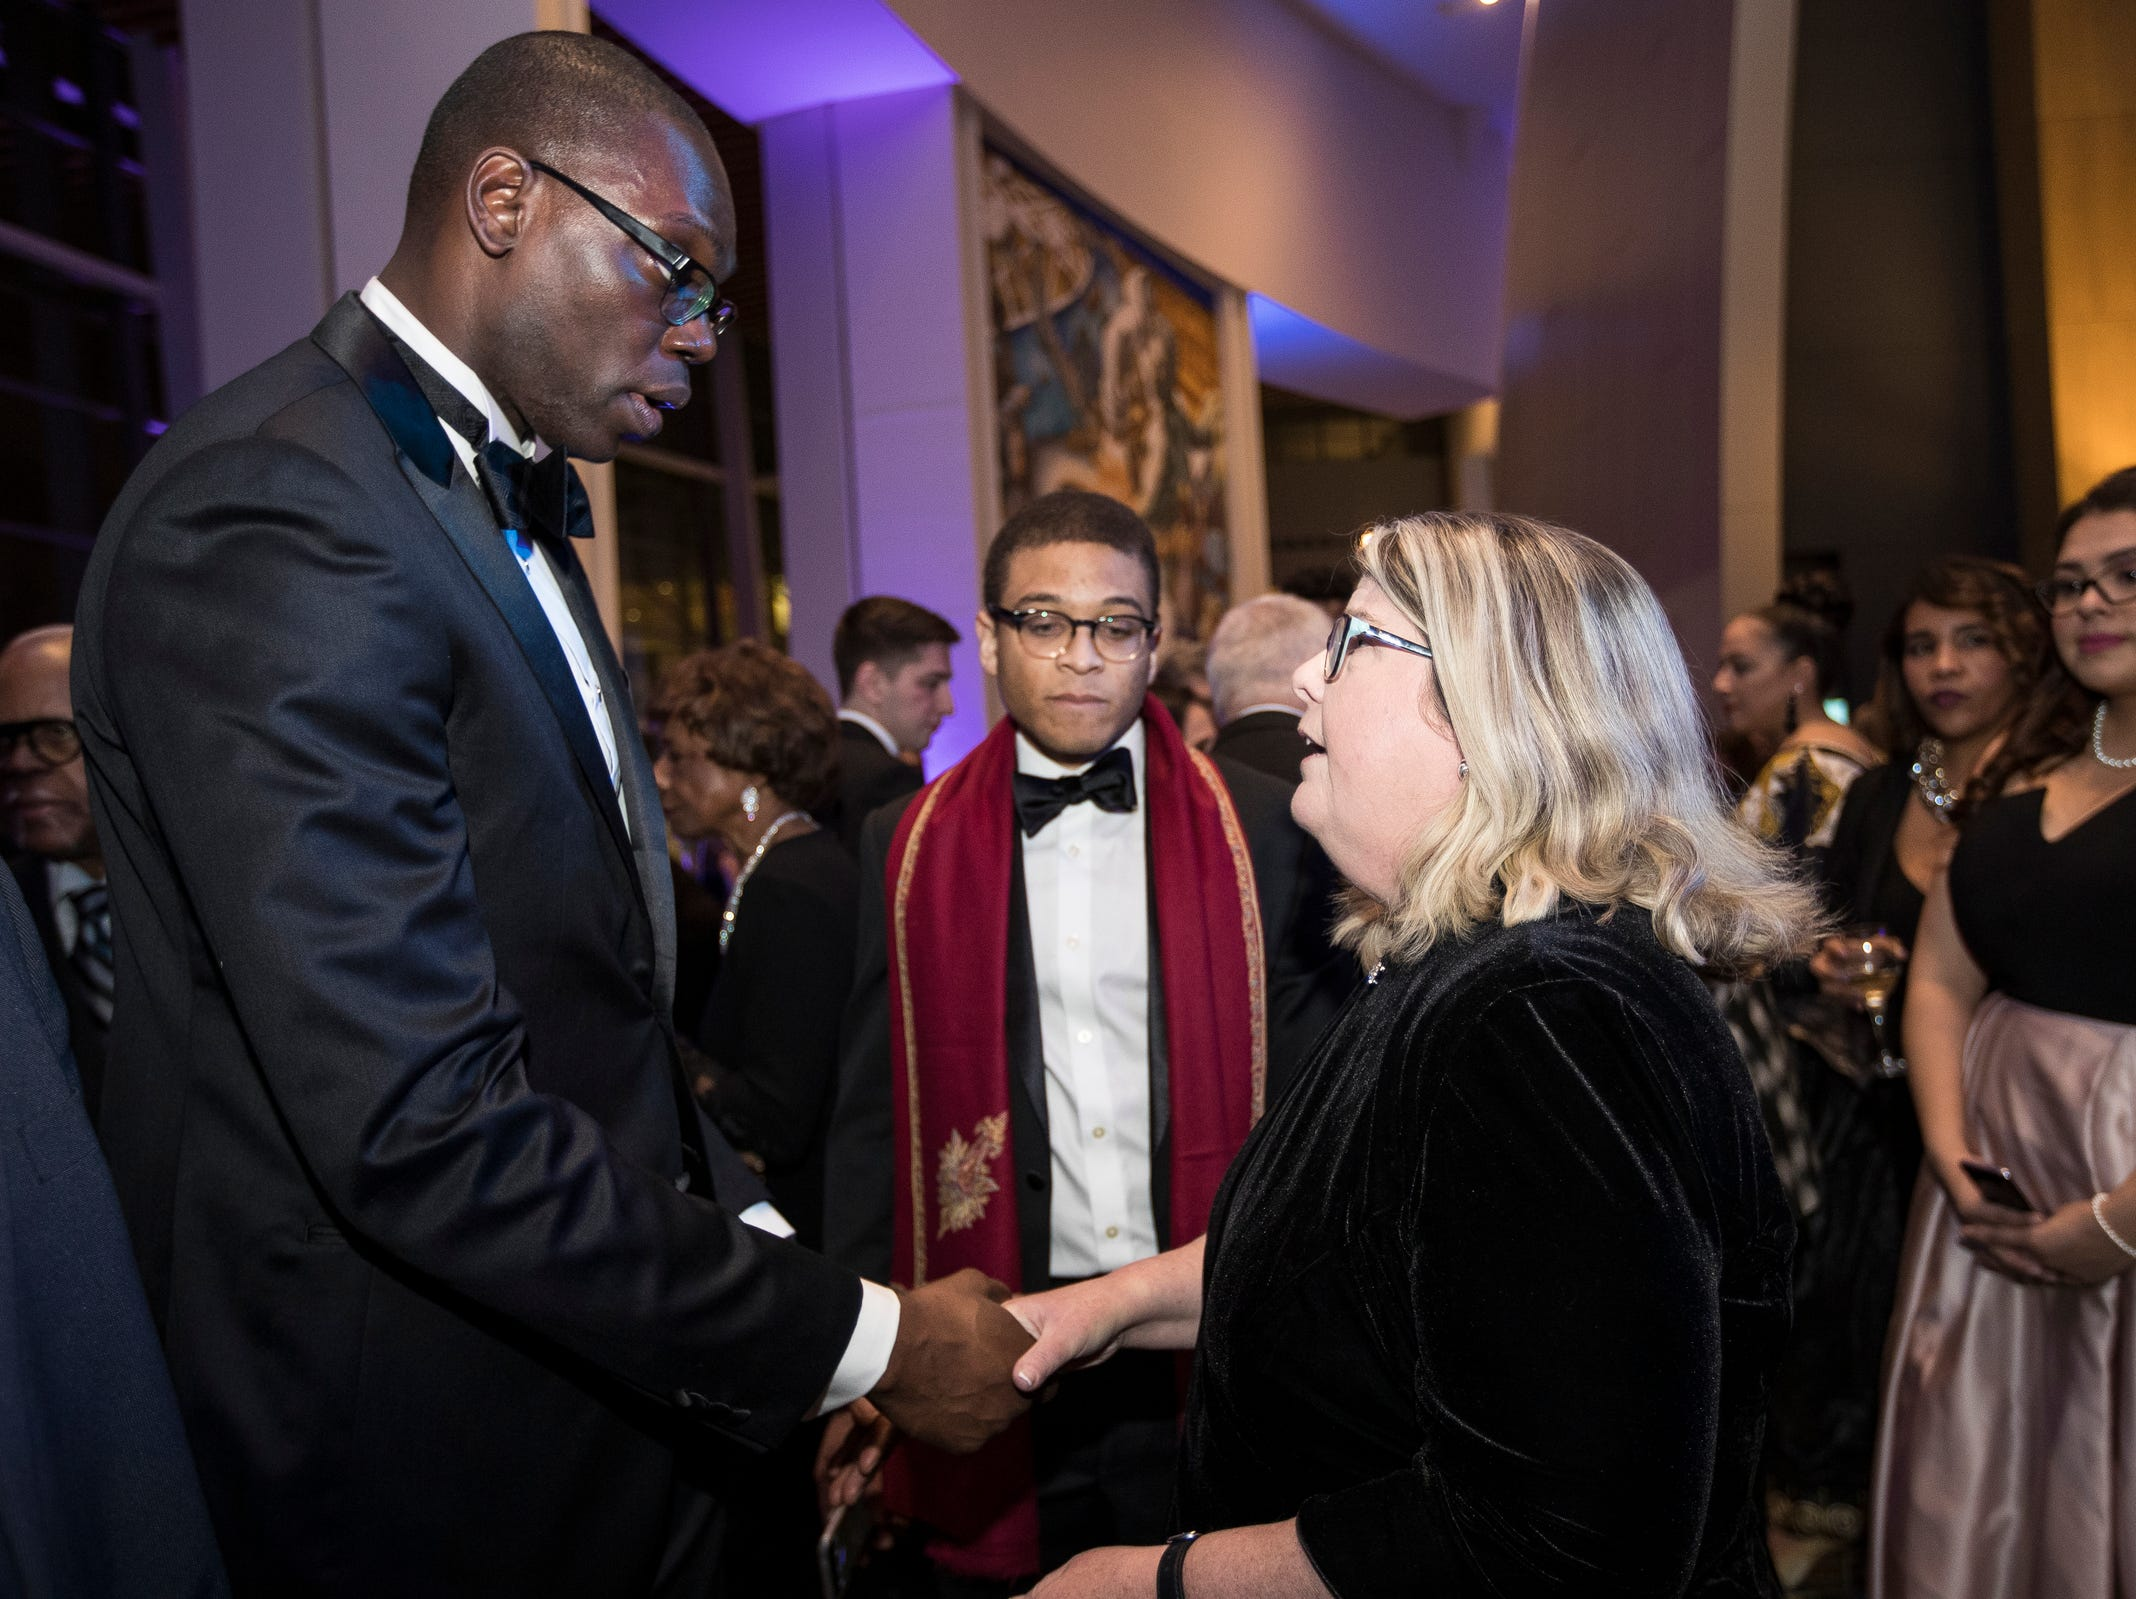 Lieutenant governor Garlin Gilchrist II shakes hands with Patricia Harris of Westland during the inaugural ball at Cobo Center in Detroit on Tuesday, Jan. 1, 2019.